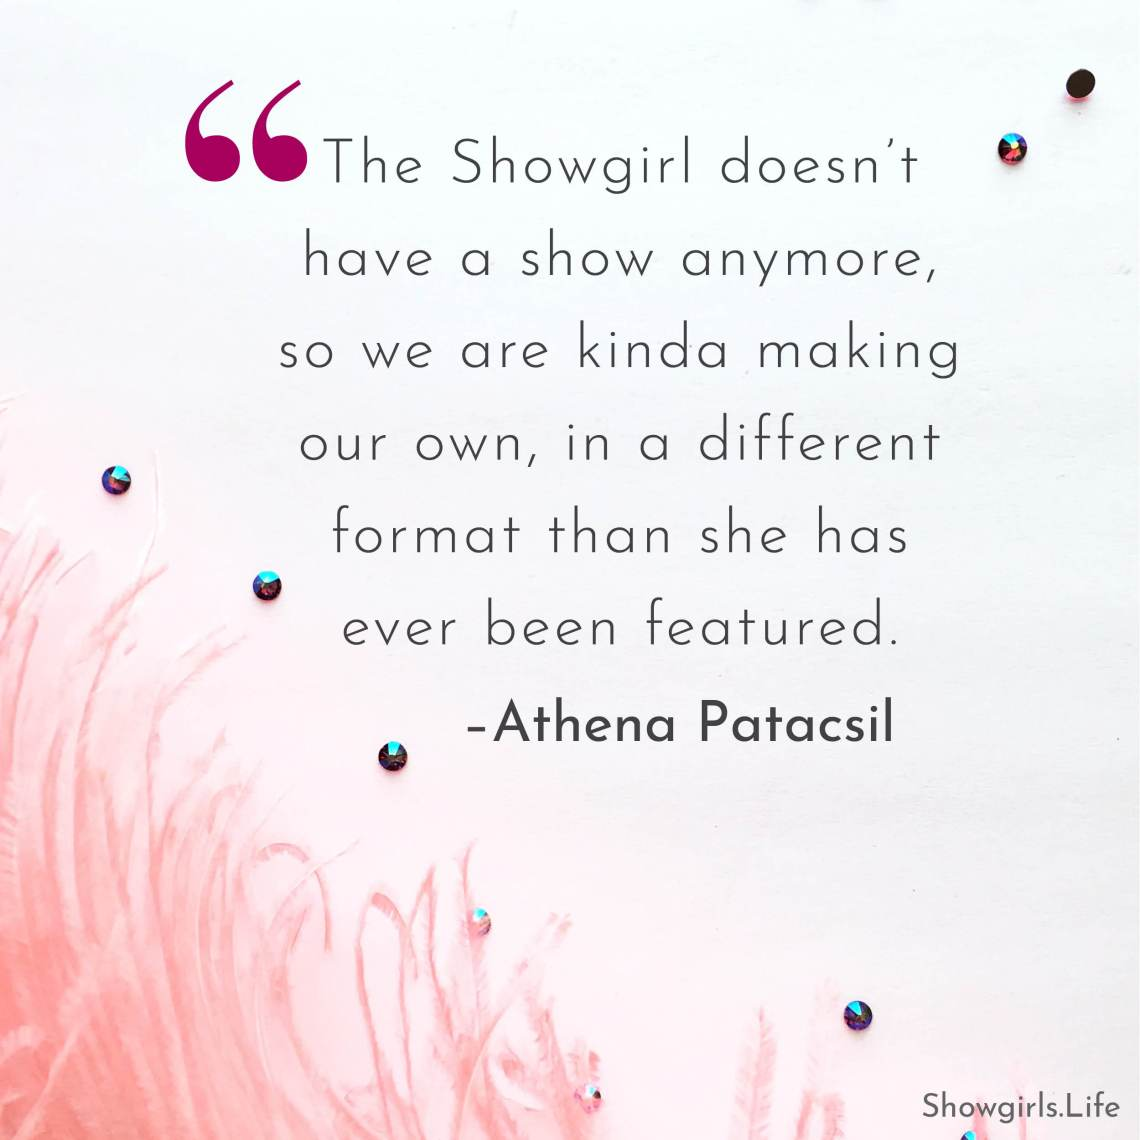 Showgirls Life blog | One heartbreaking truth: the Showgirl is missing from the city that made her famous